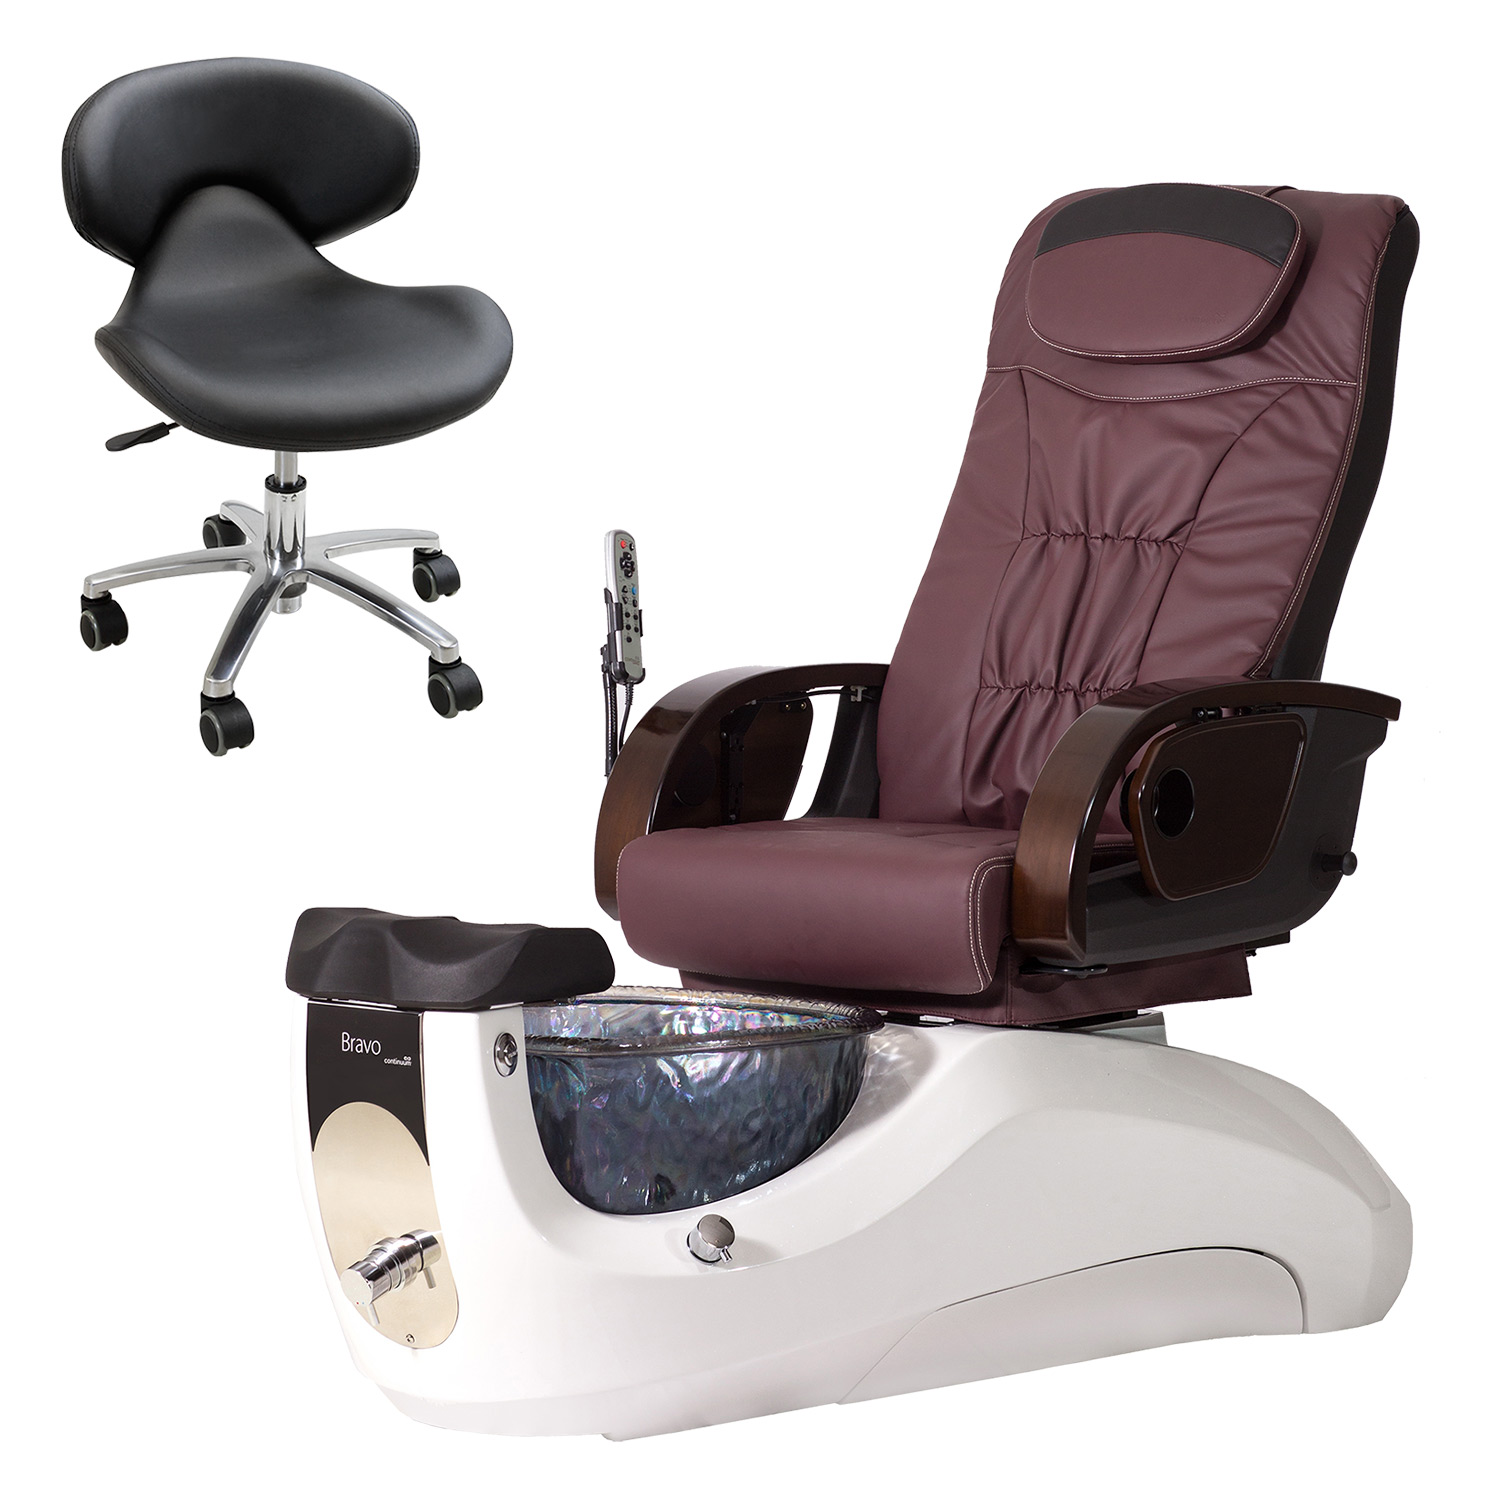 Continuum Bravo with Glass Basin Pedicure Spa Chair  main product image